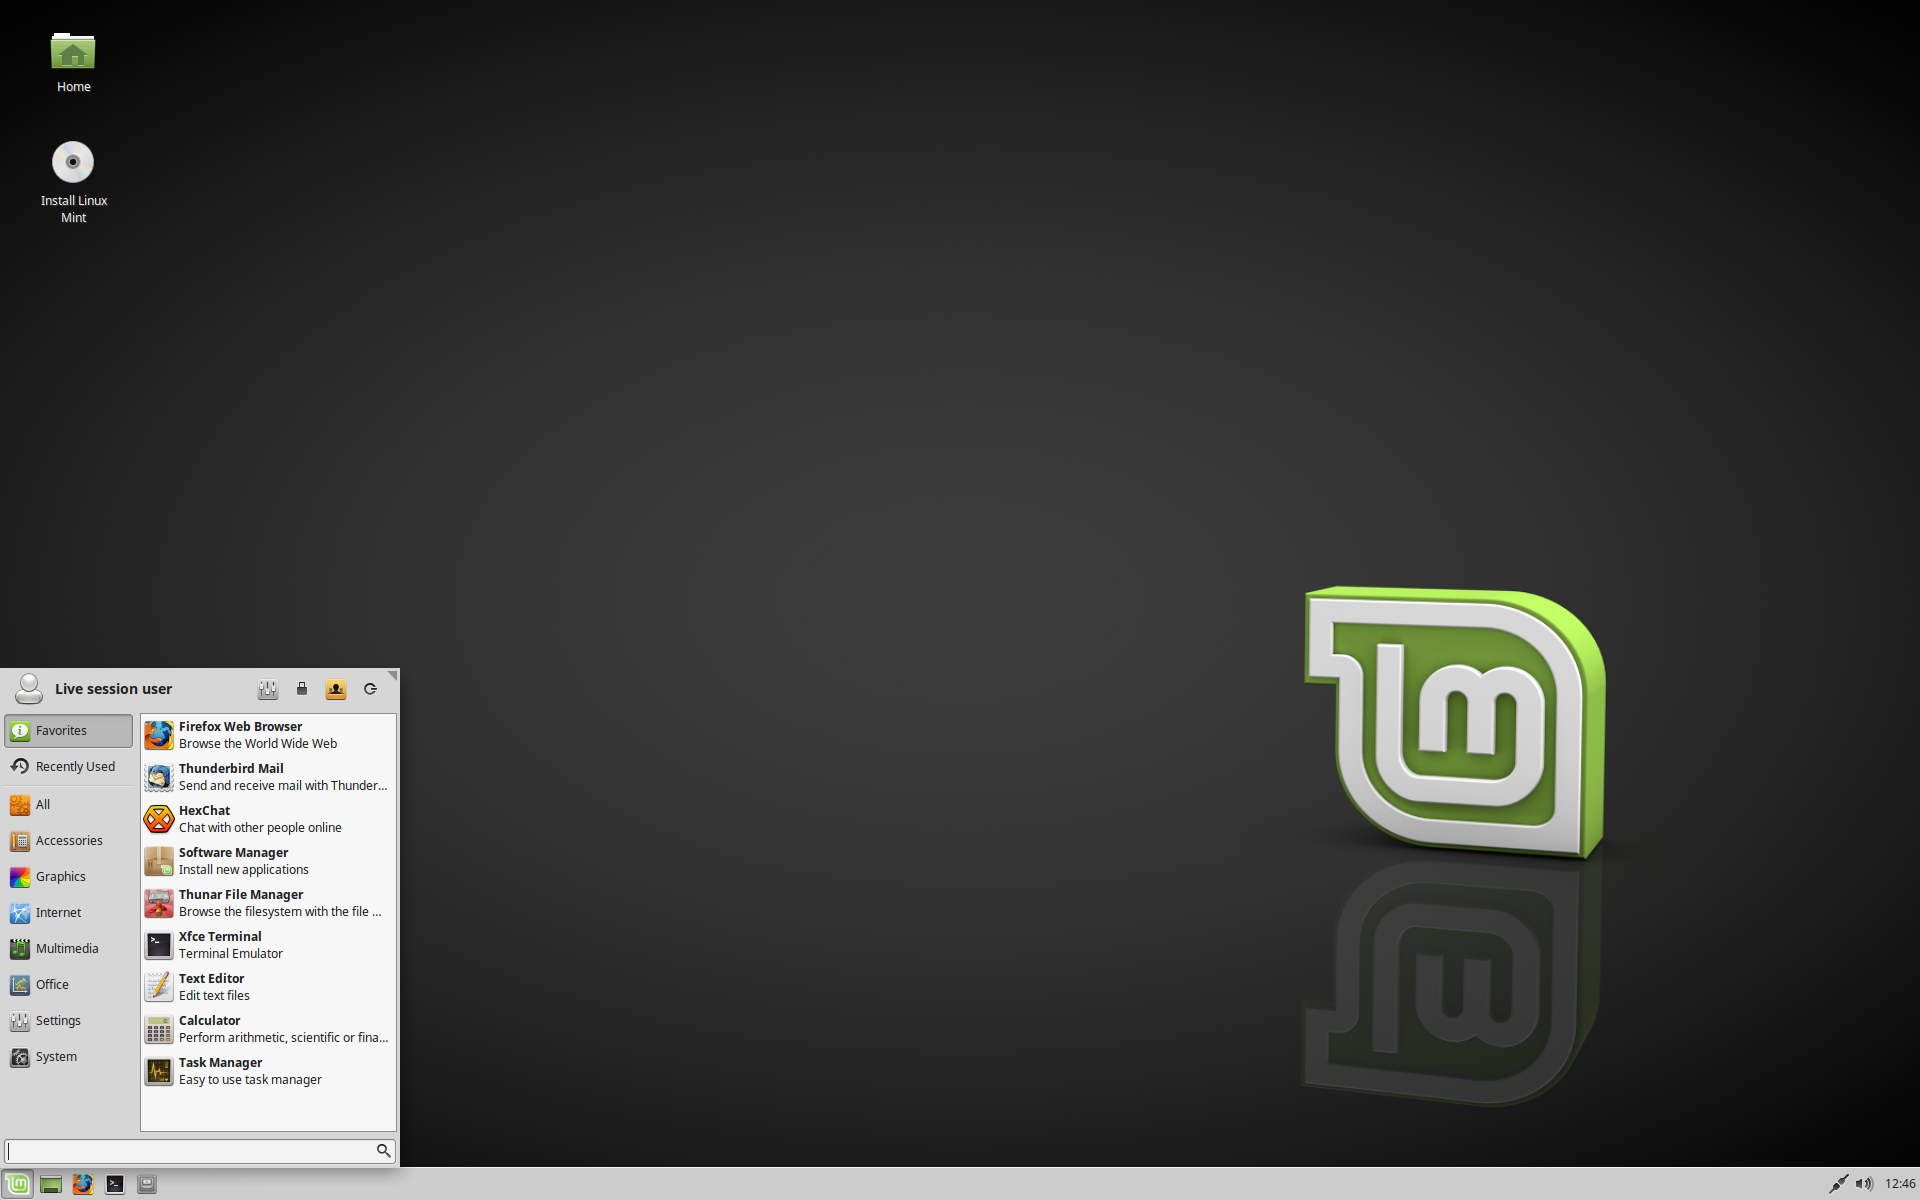 """Linux Mint 18 3 """"Sylvia"""" Xfce released! – The Linux Mint Blog"""